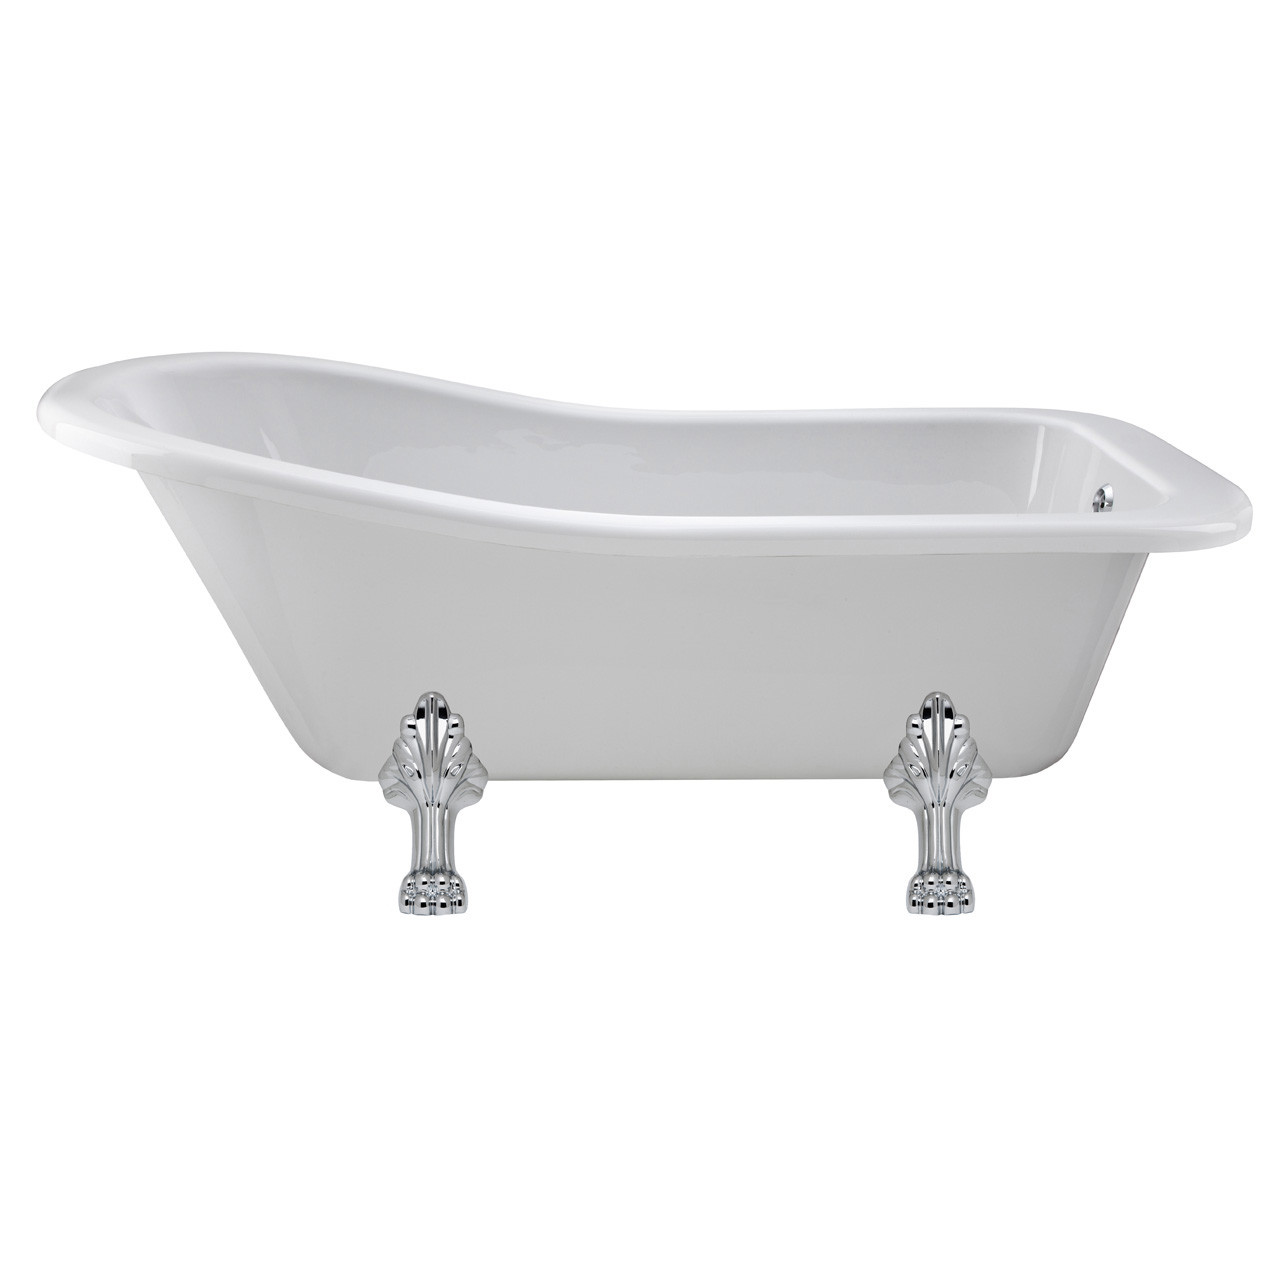 Nuie Brockley 1700mm Single Ended Freestanding Bath with Pride Legs - RL1690C2